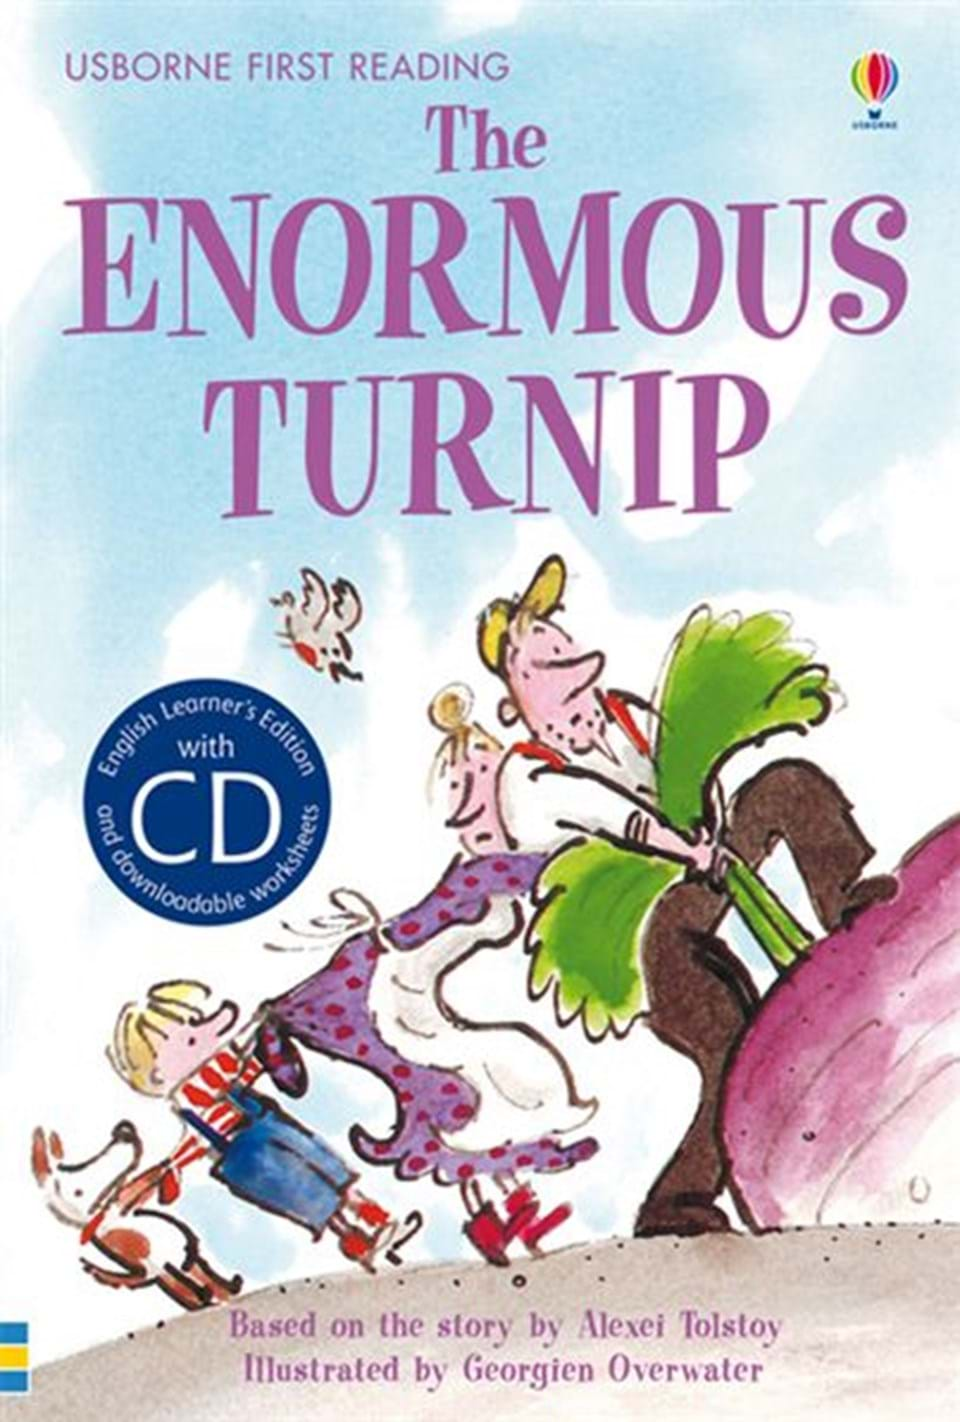 """Workbooks the enormous turnip worksheets : The Enormous Turnip"""" at Usborne Books at Home"""